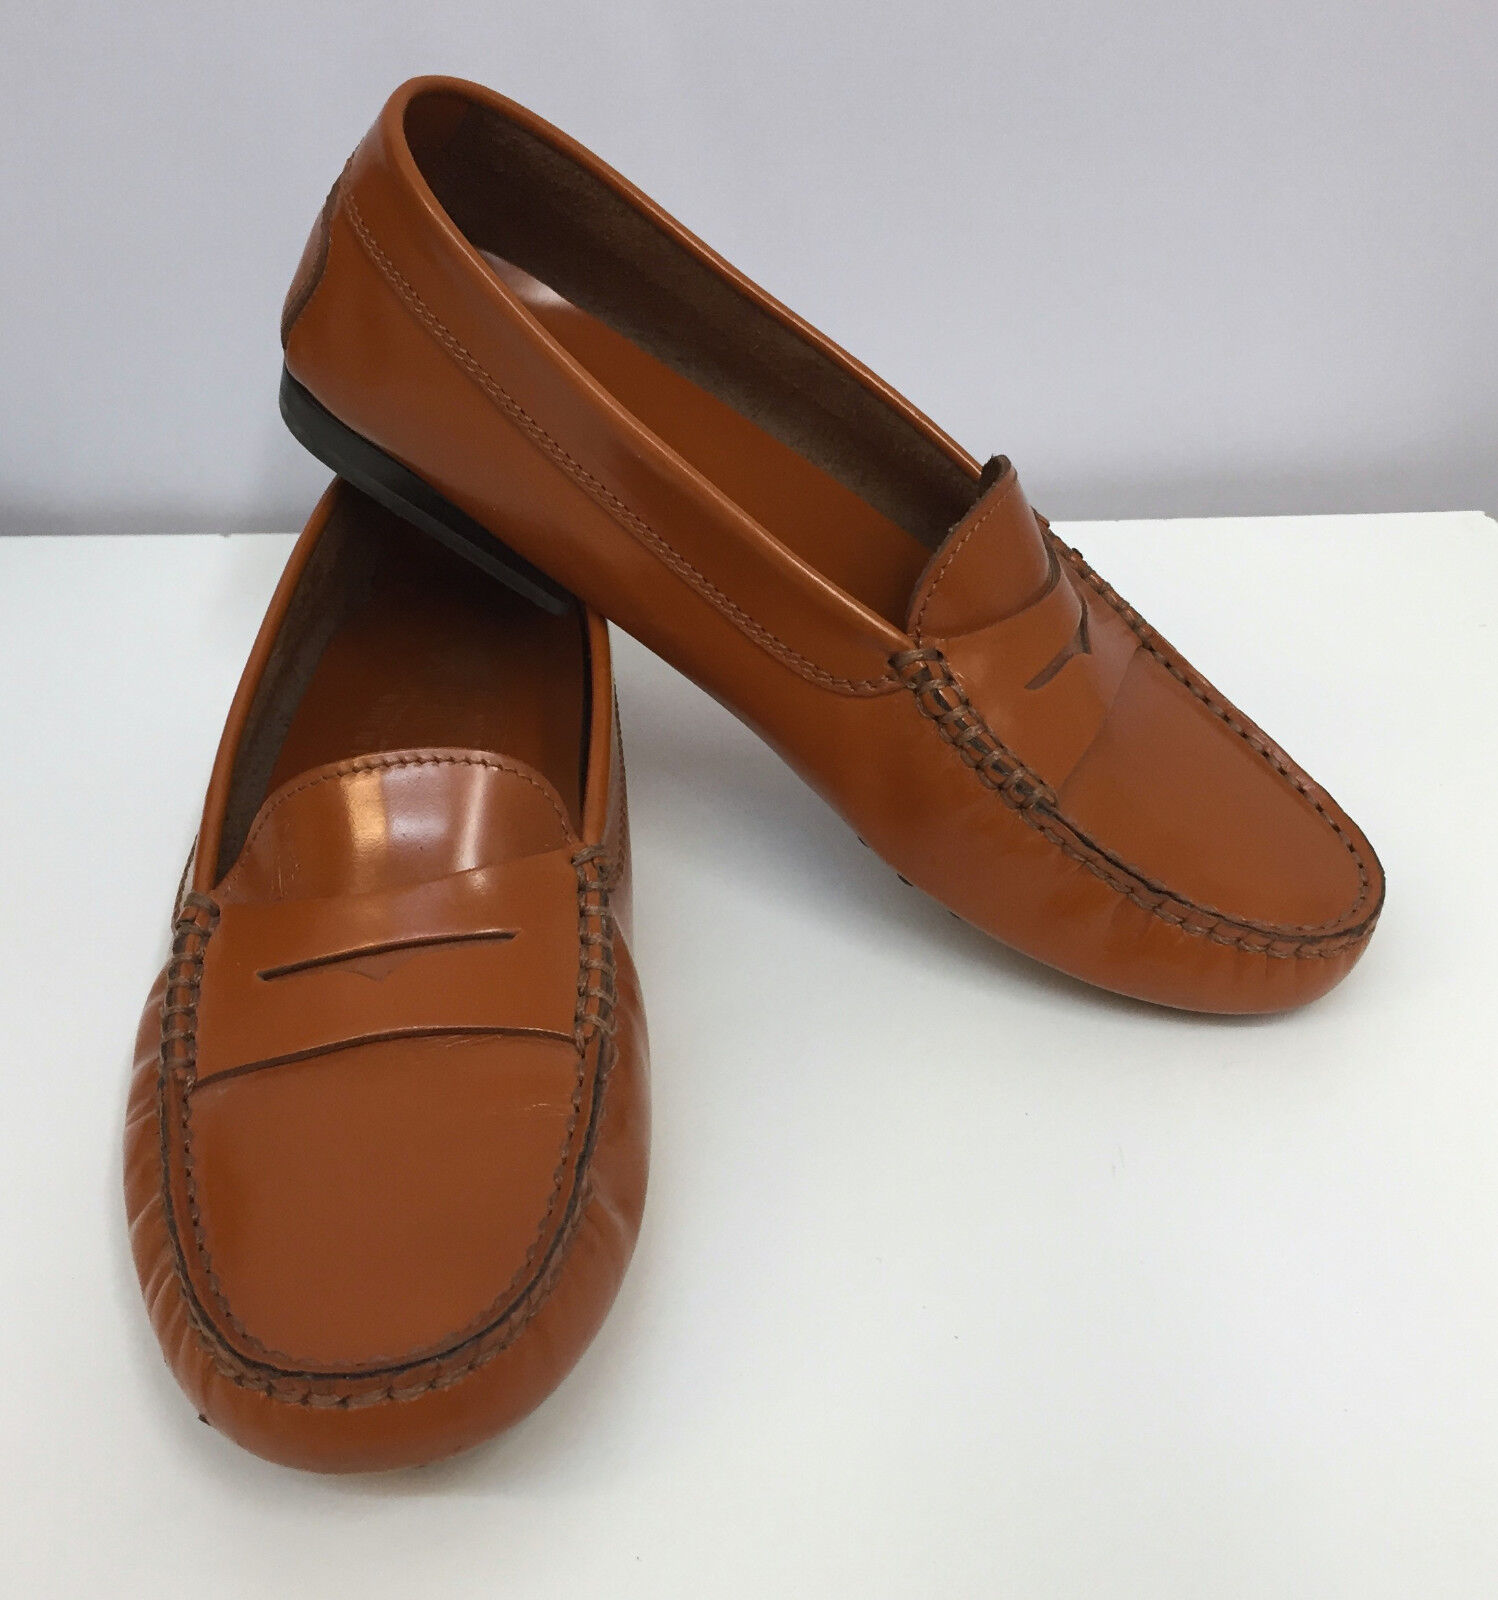 TOD'S LOAFERS Schuhe DRIVING Schuhe ORANGE TAN WAXED LEATHER HAND MADE SIZE 5 1/2